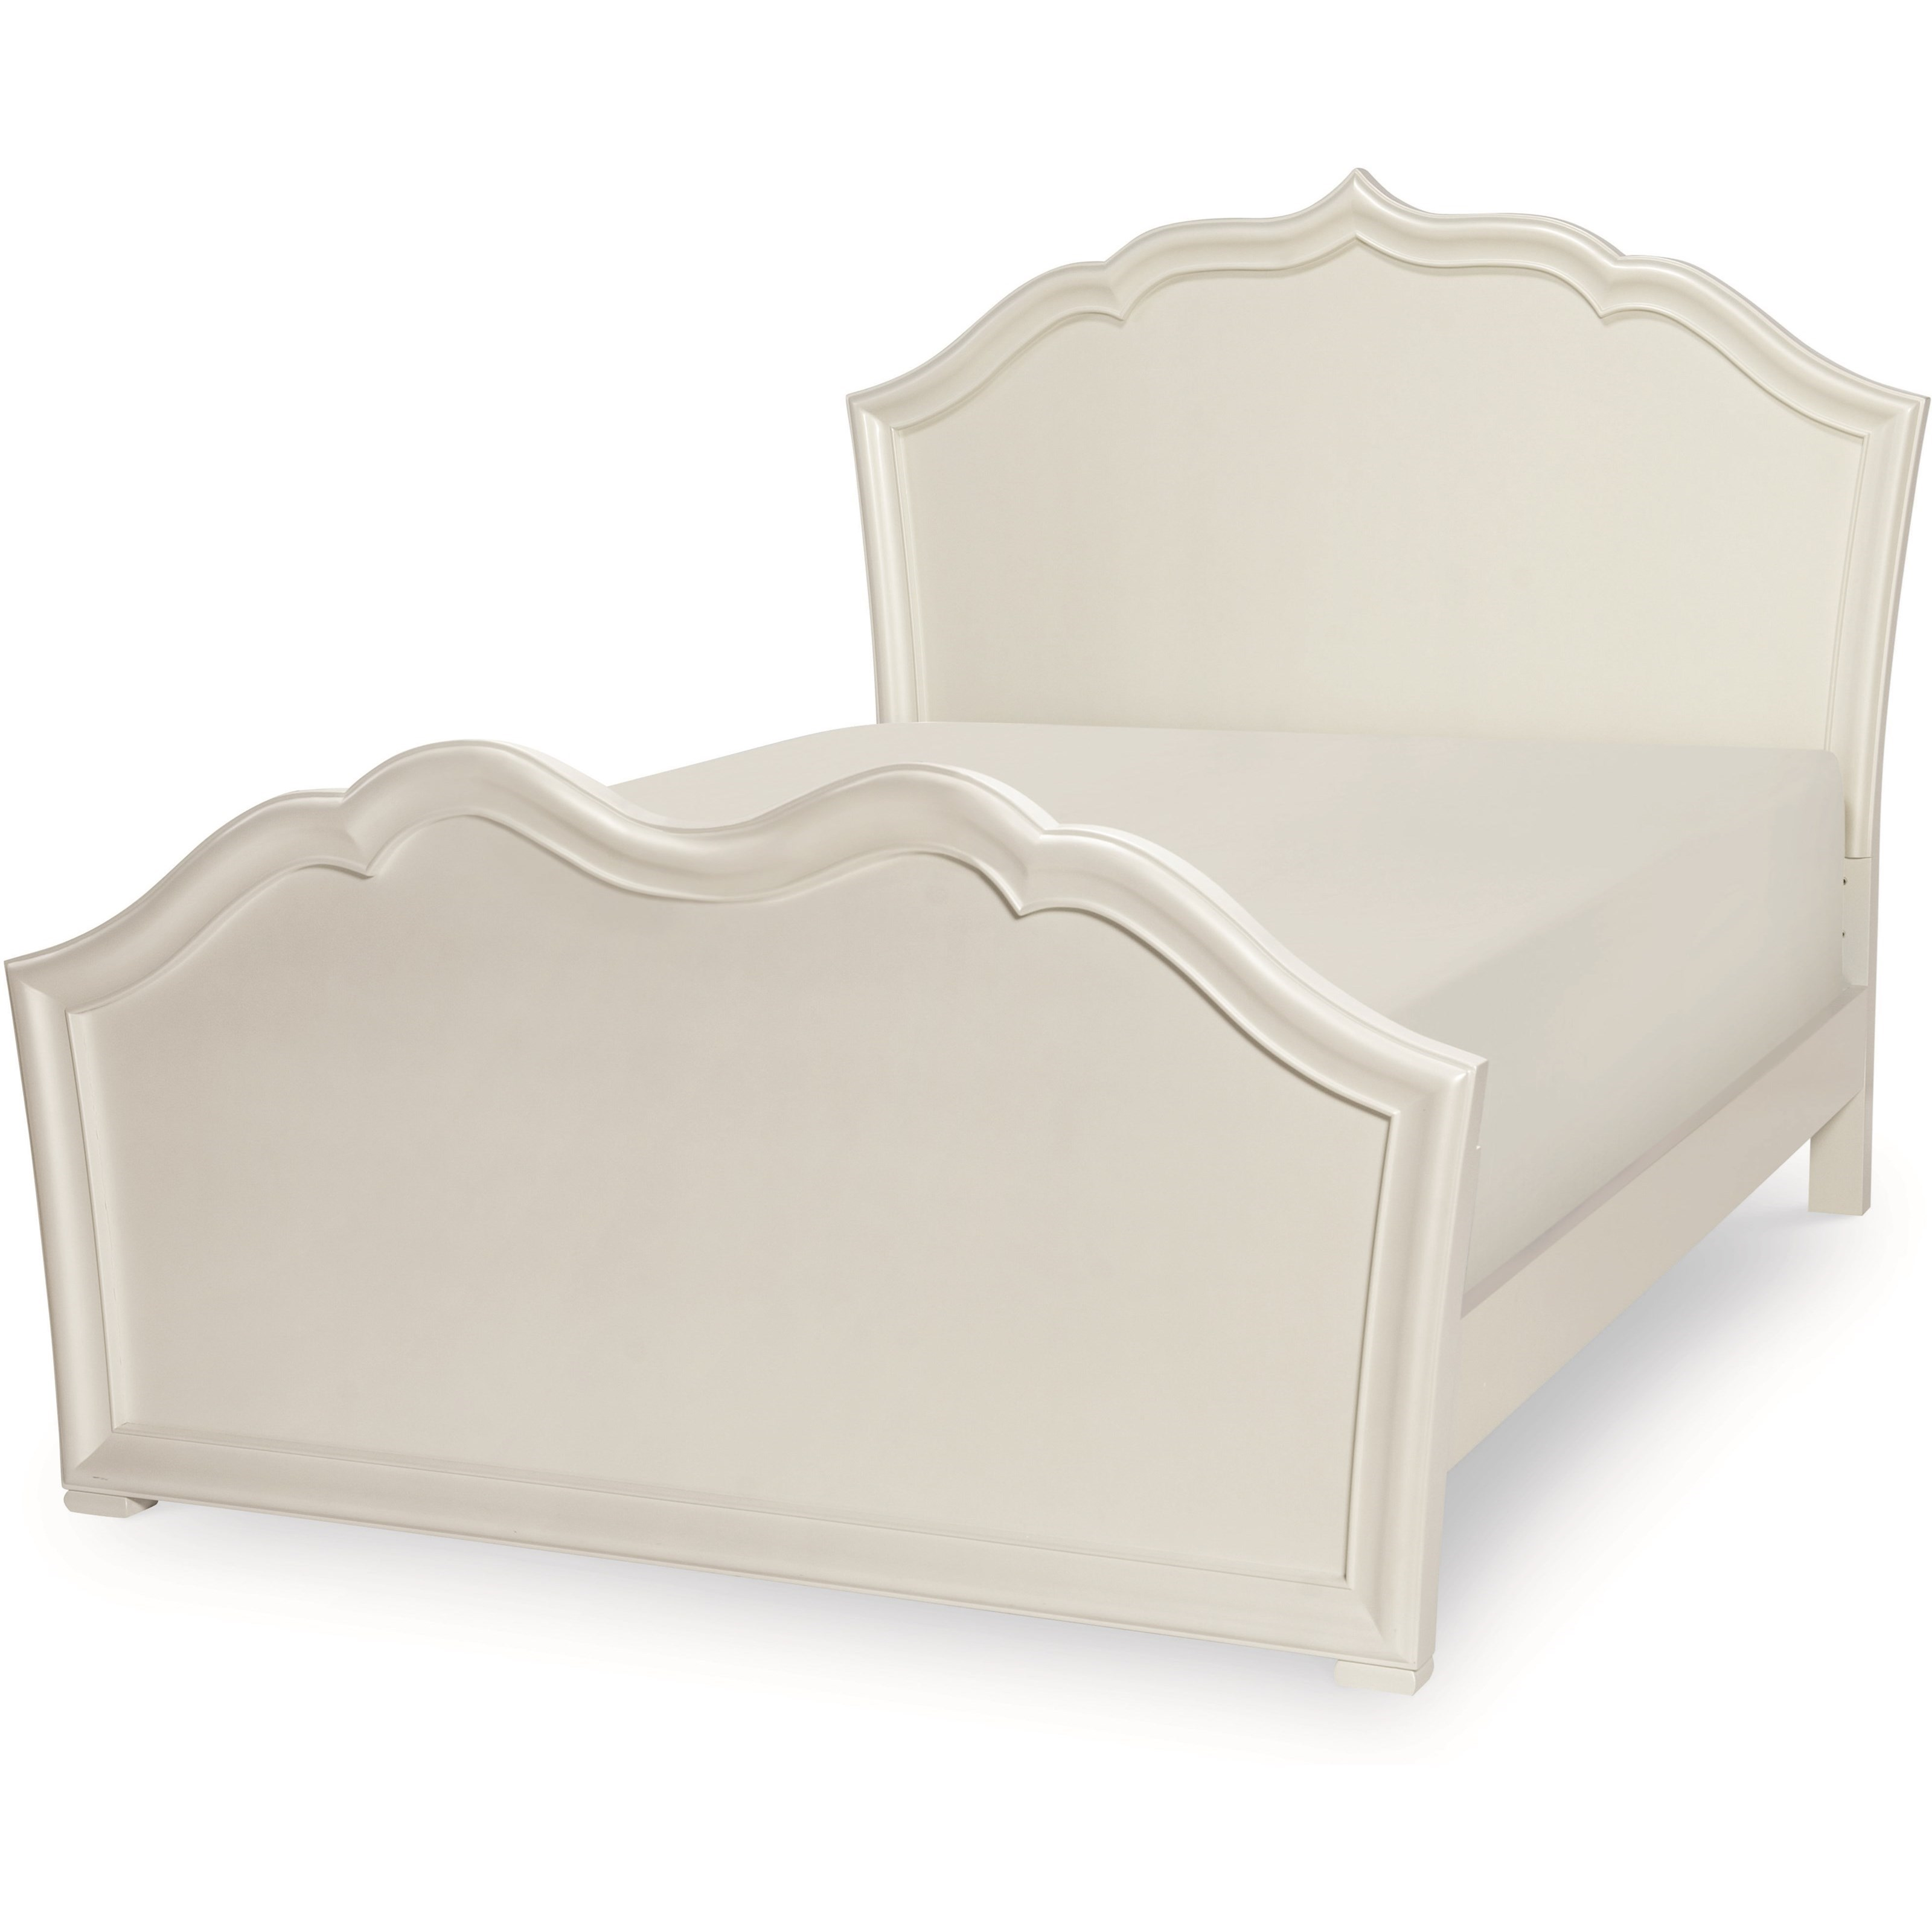 Legacy Classic Kids Tiffany Full Panel Bed - Item Number: 5930-4104K